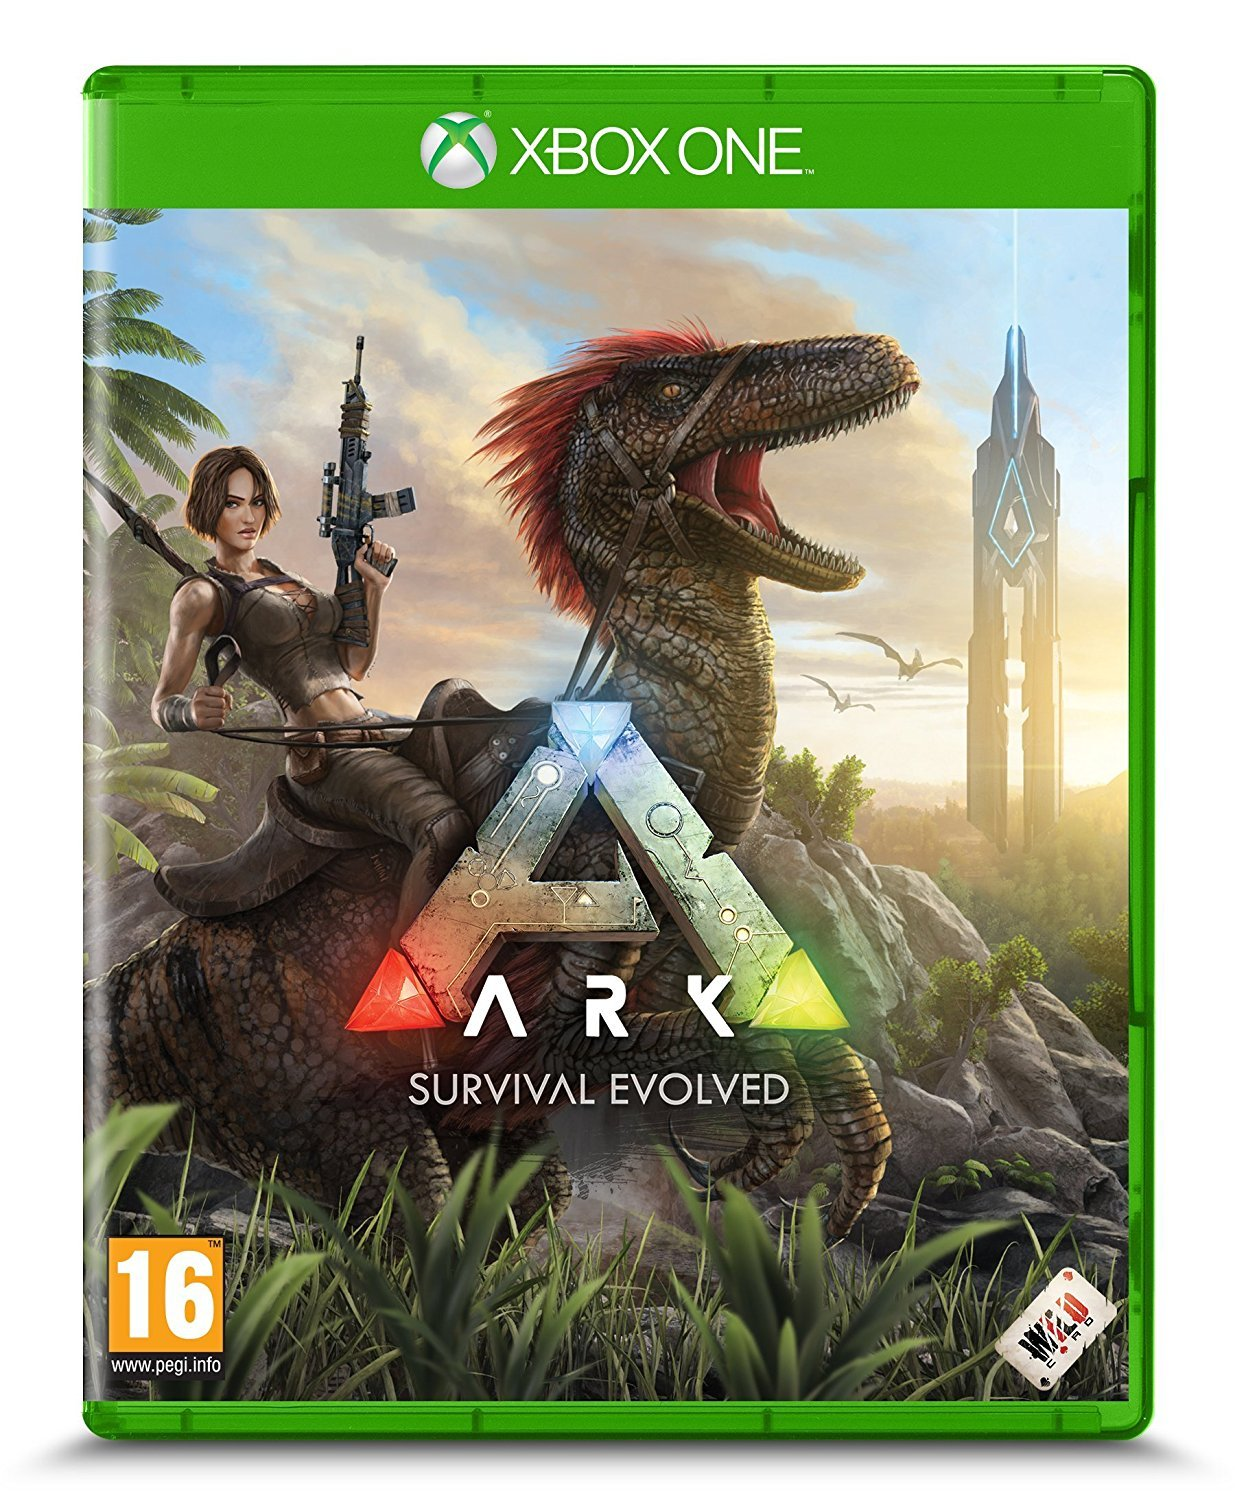 ARK: Survival Evolved (Xbox One) by By Studio Wildcard (Image #1)